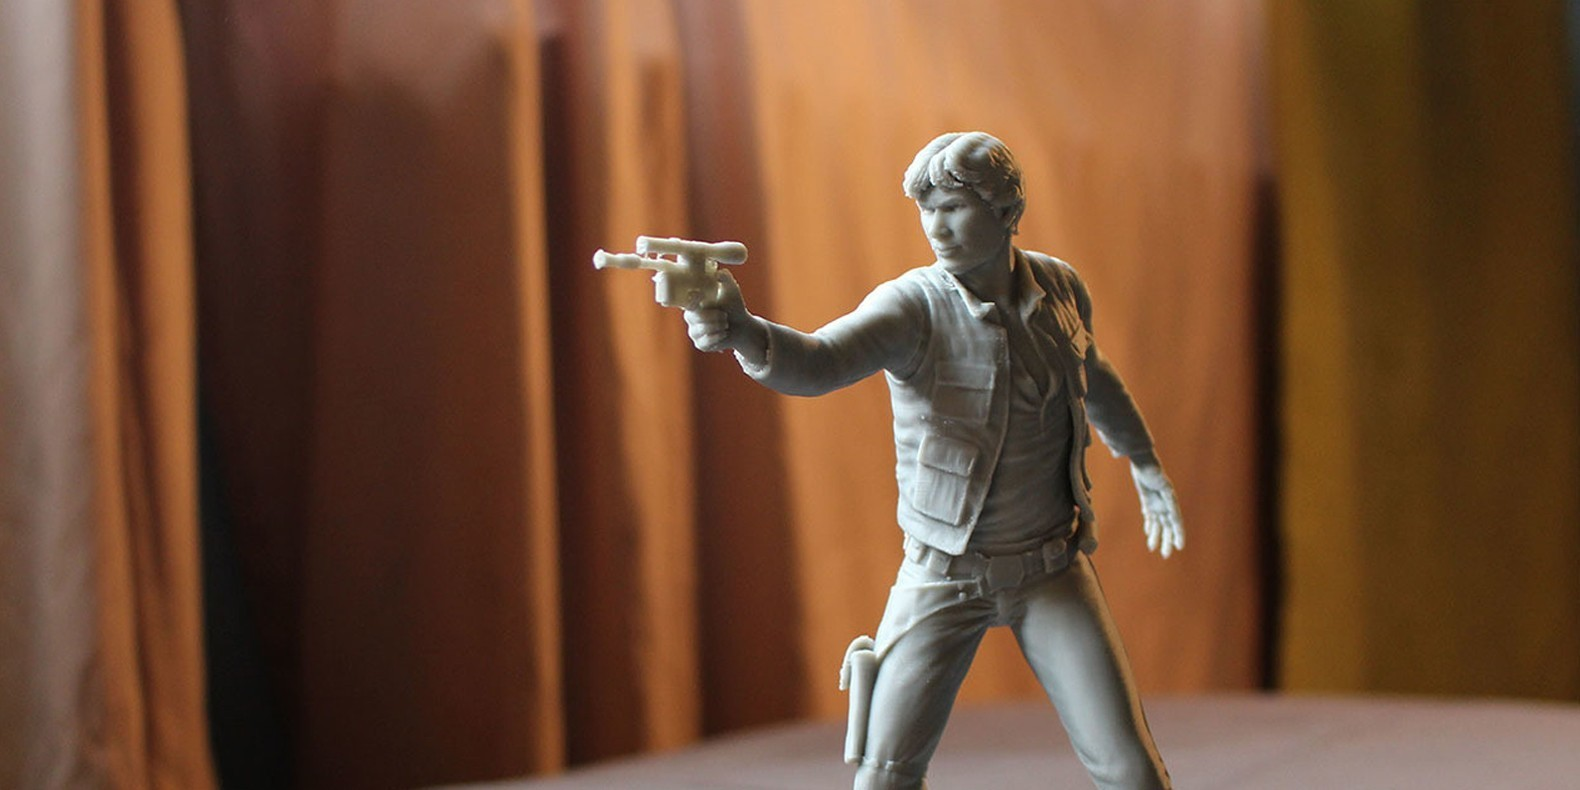 Here is a selection of the best Star Wars 3D models to make with a 3D printer